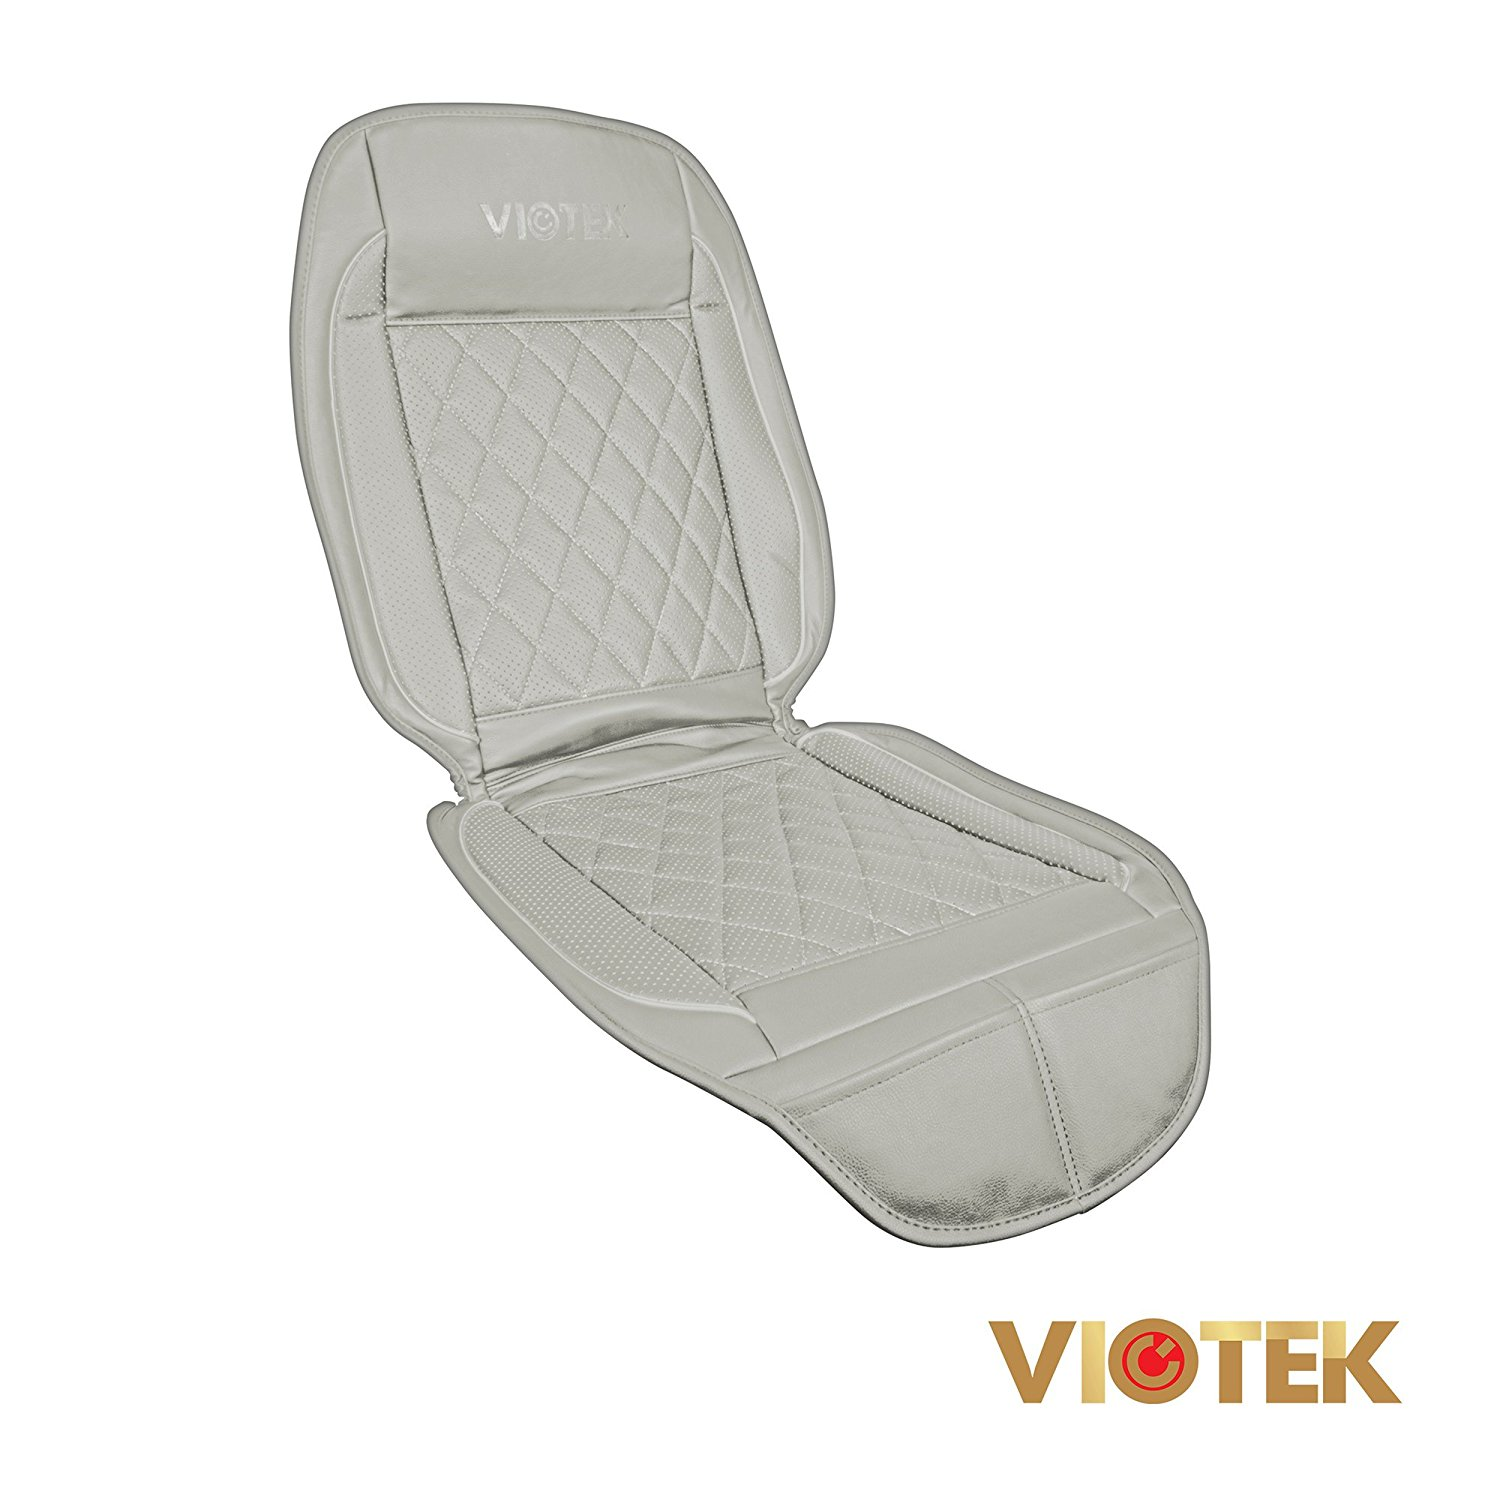 Car Seat Cushions Australia Viotek Cooling Car Seat Cushions V2